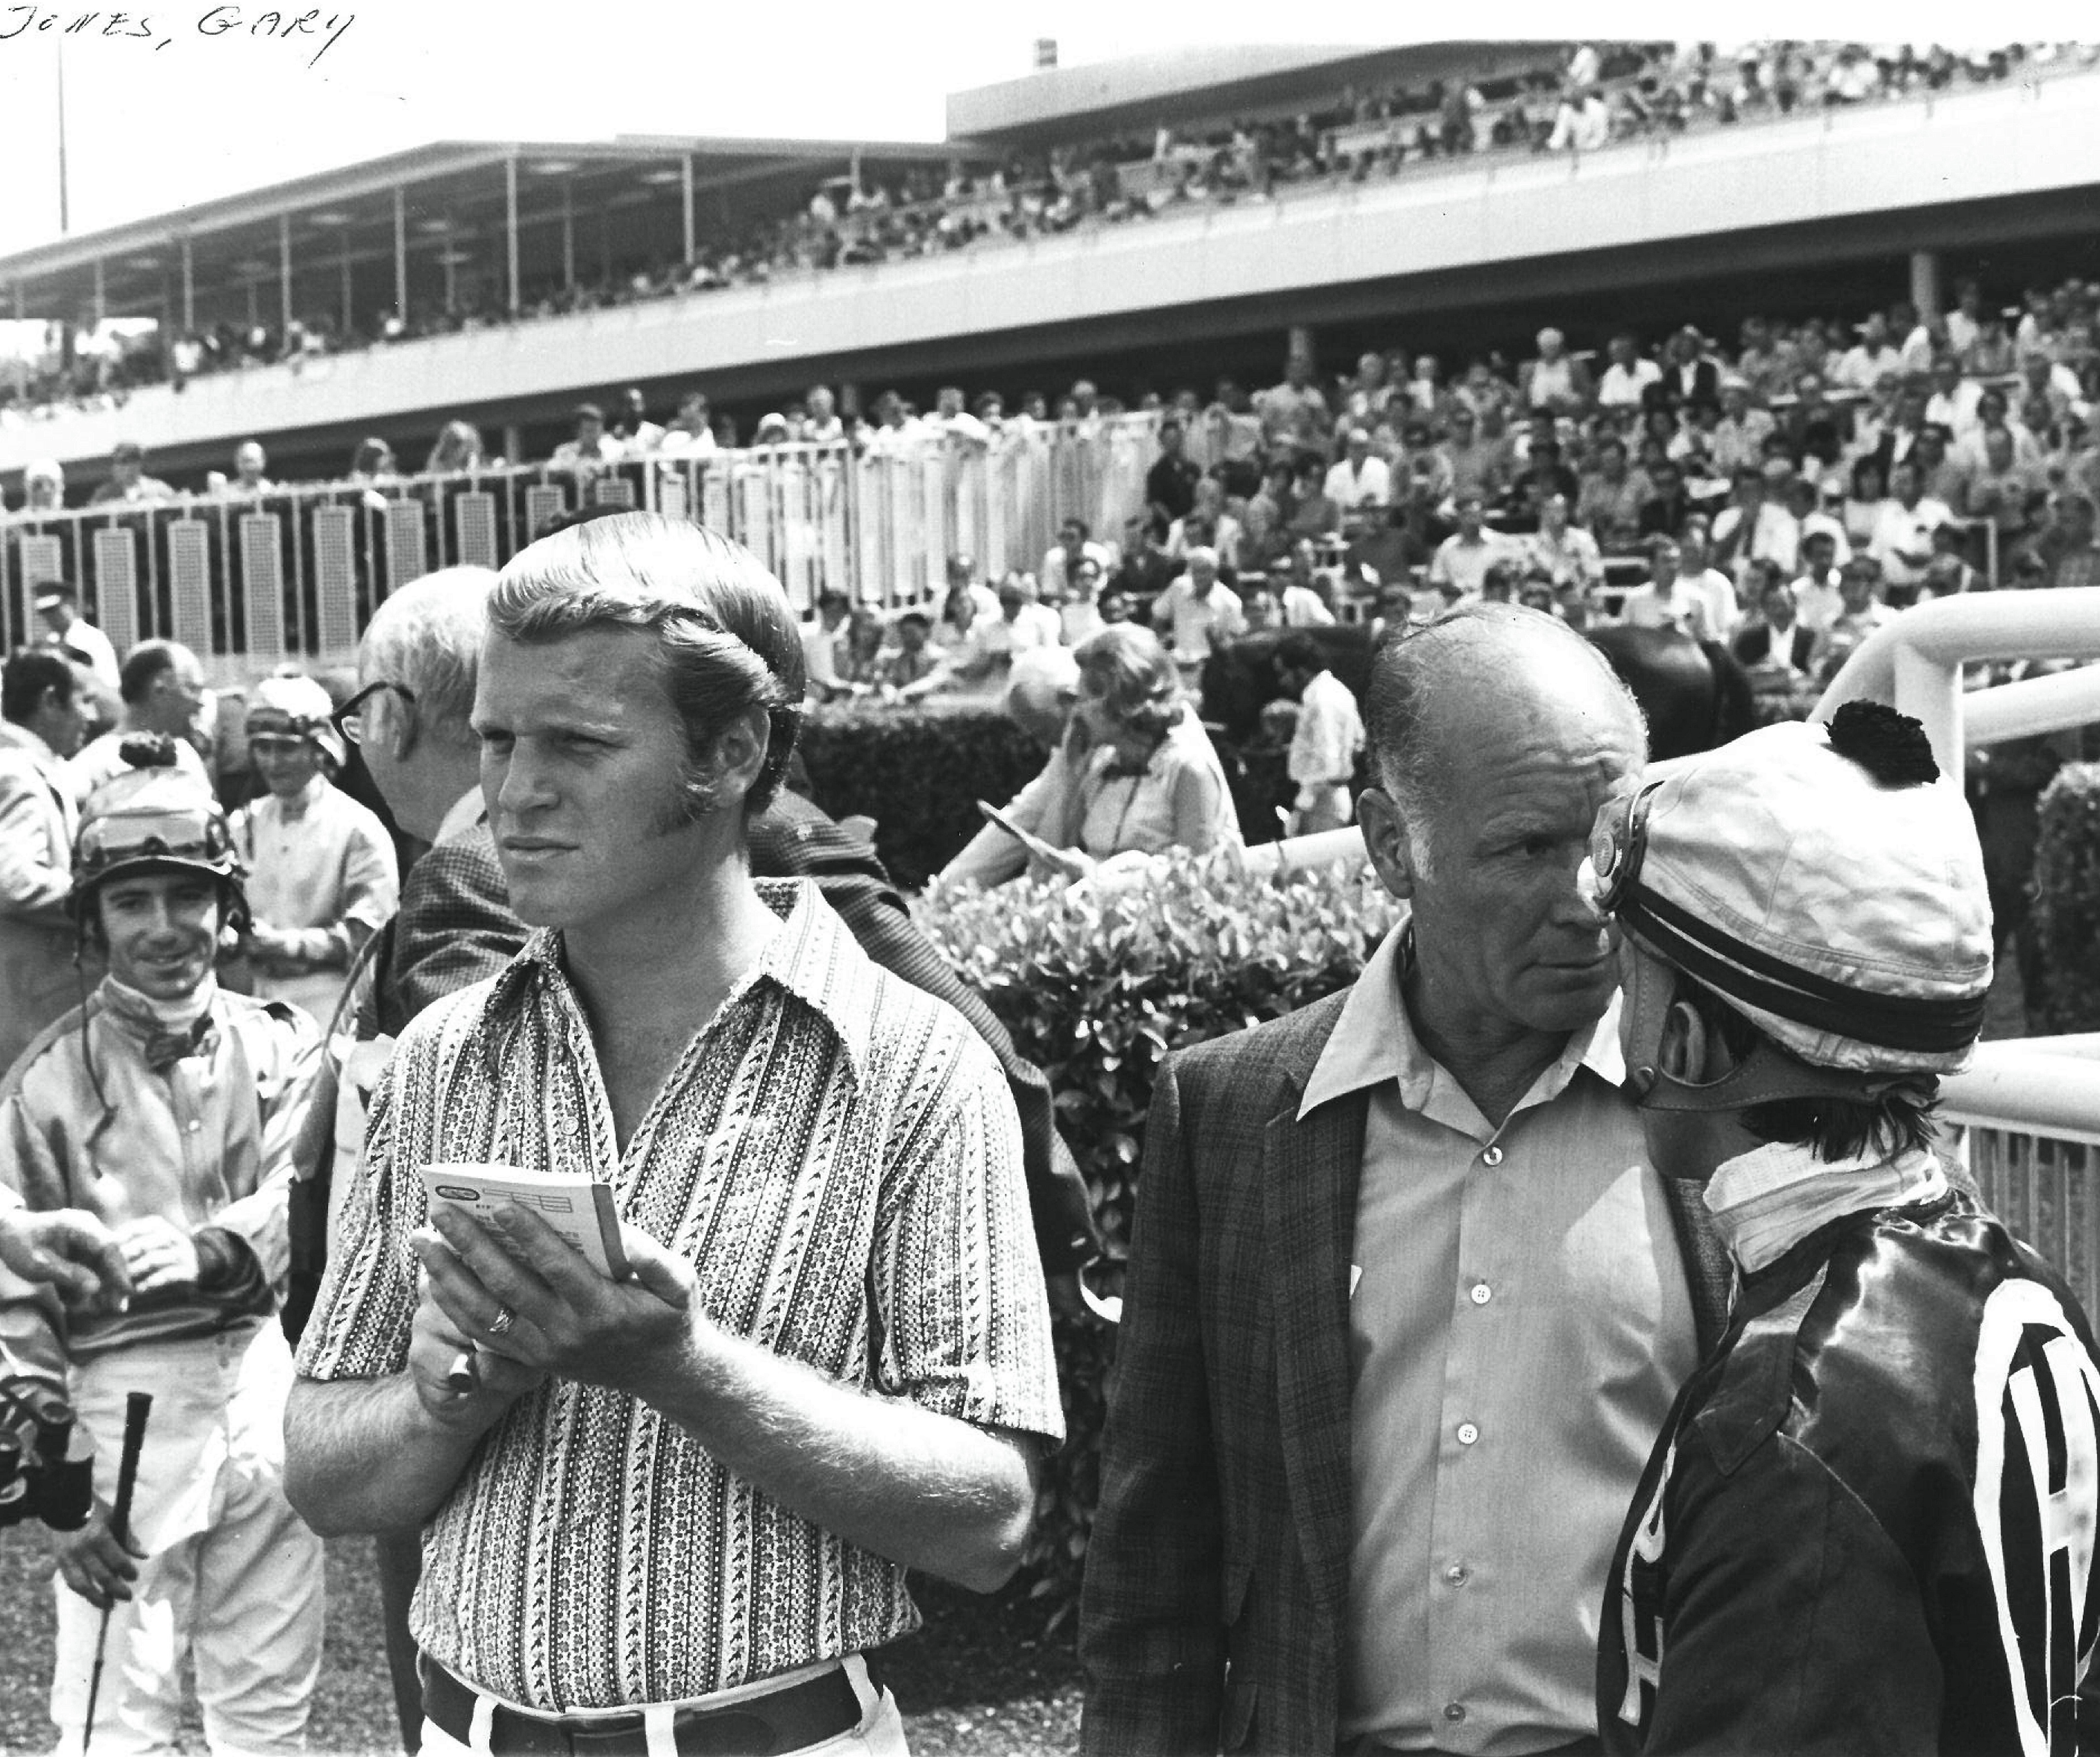 A young Gary Jones at the track with his father, Farrell Jones, amidst the jockey colony before a race (Benoit Photo)